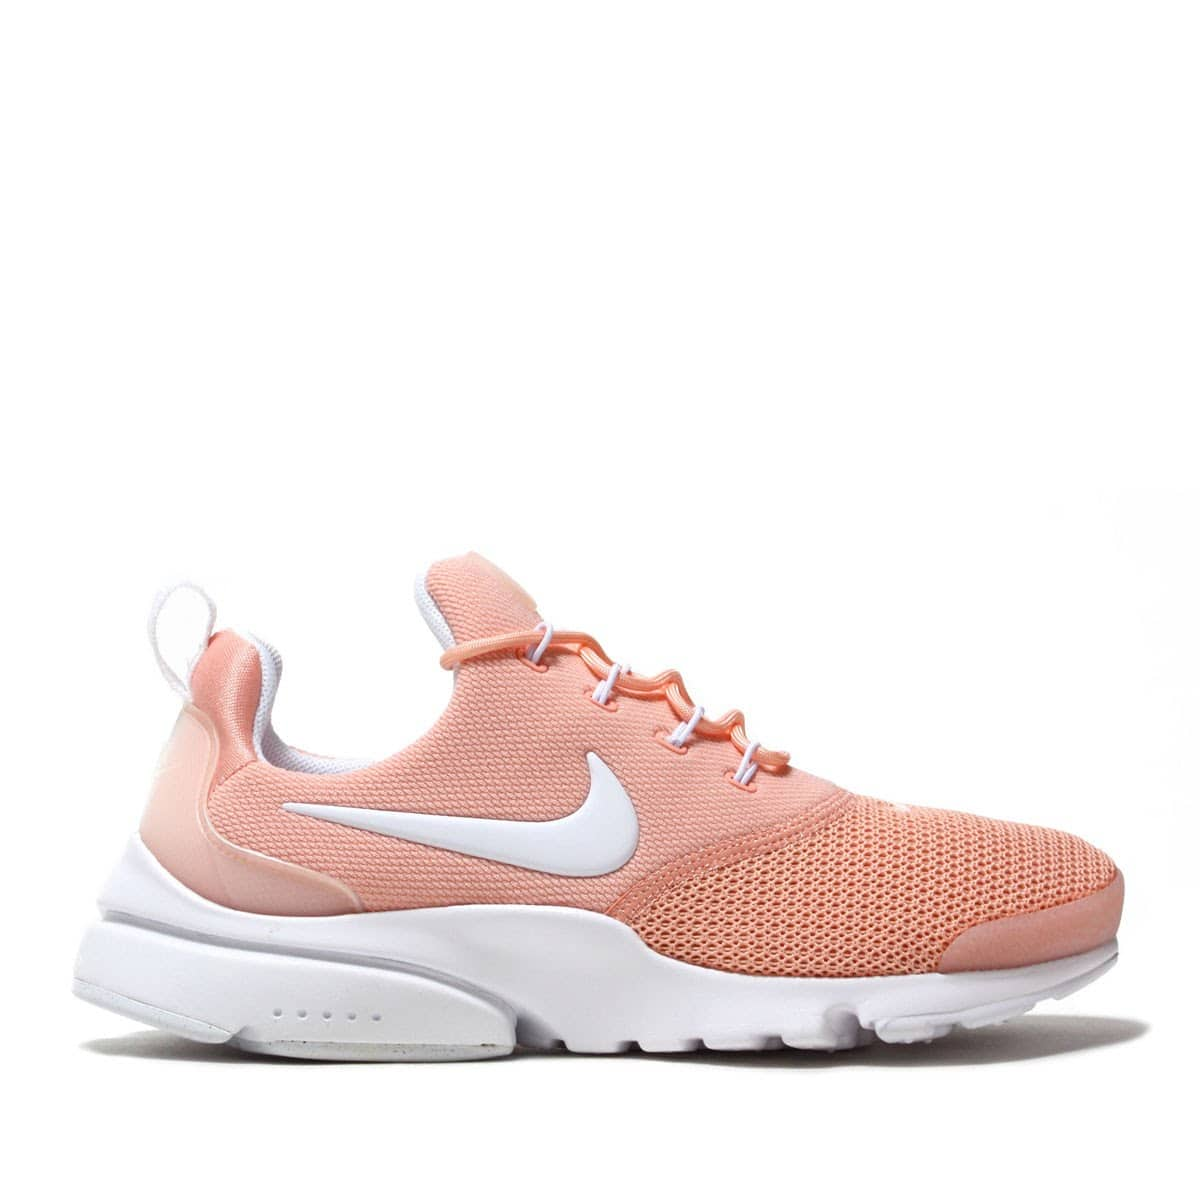 NIKE WMNS PRESTO FLY CORAL STARDUST